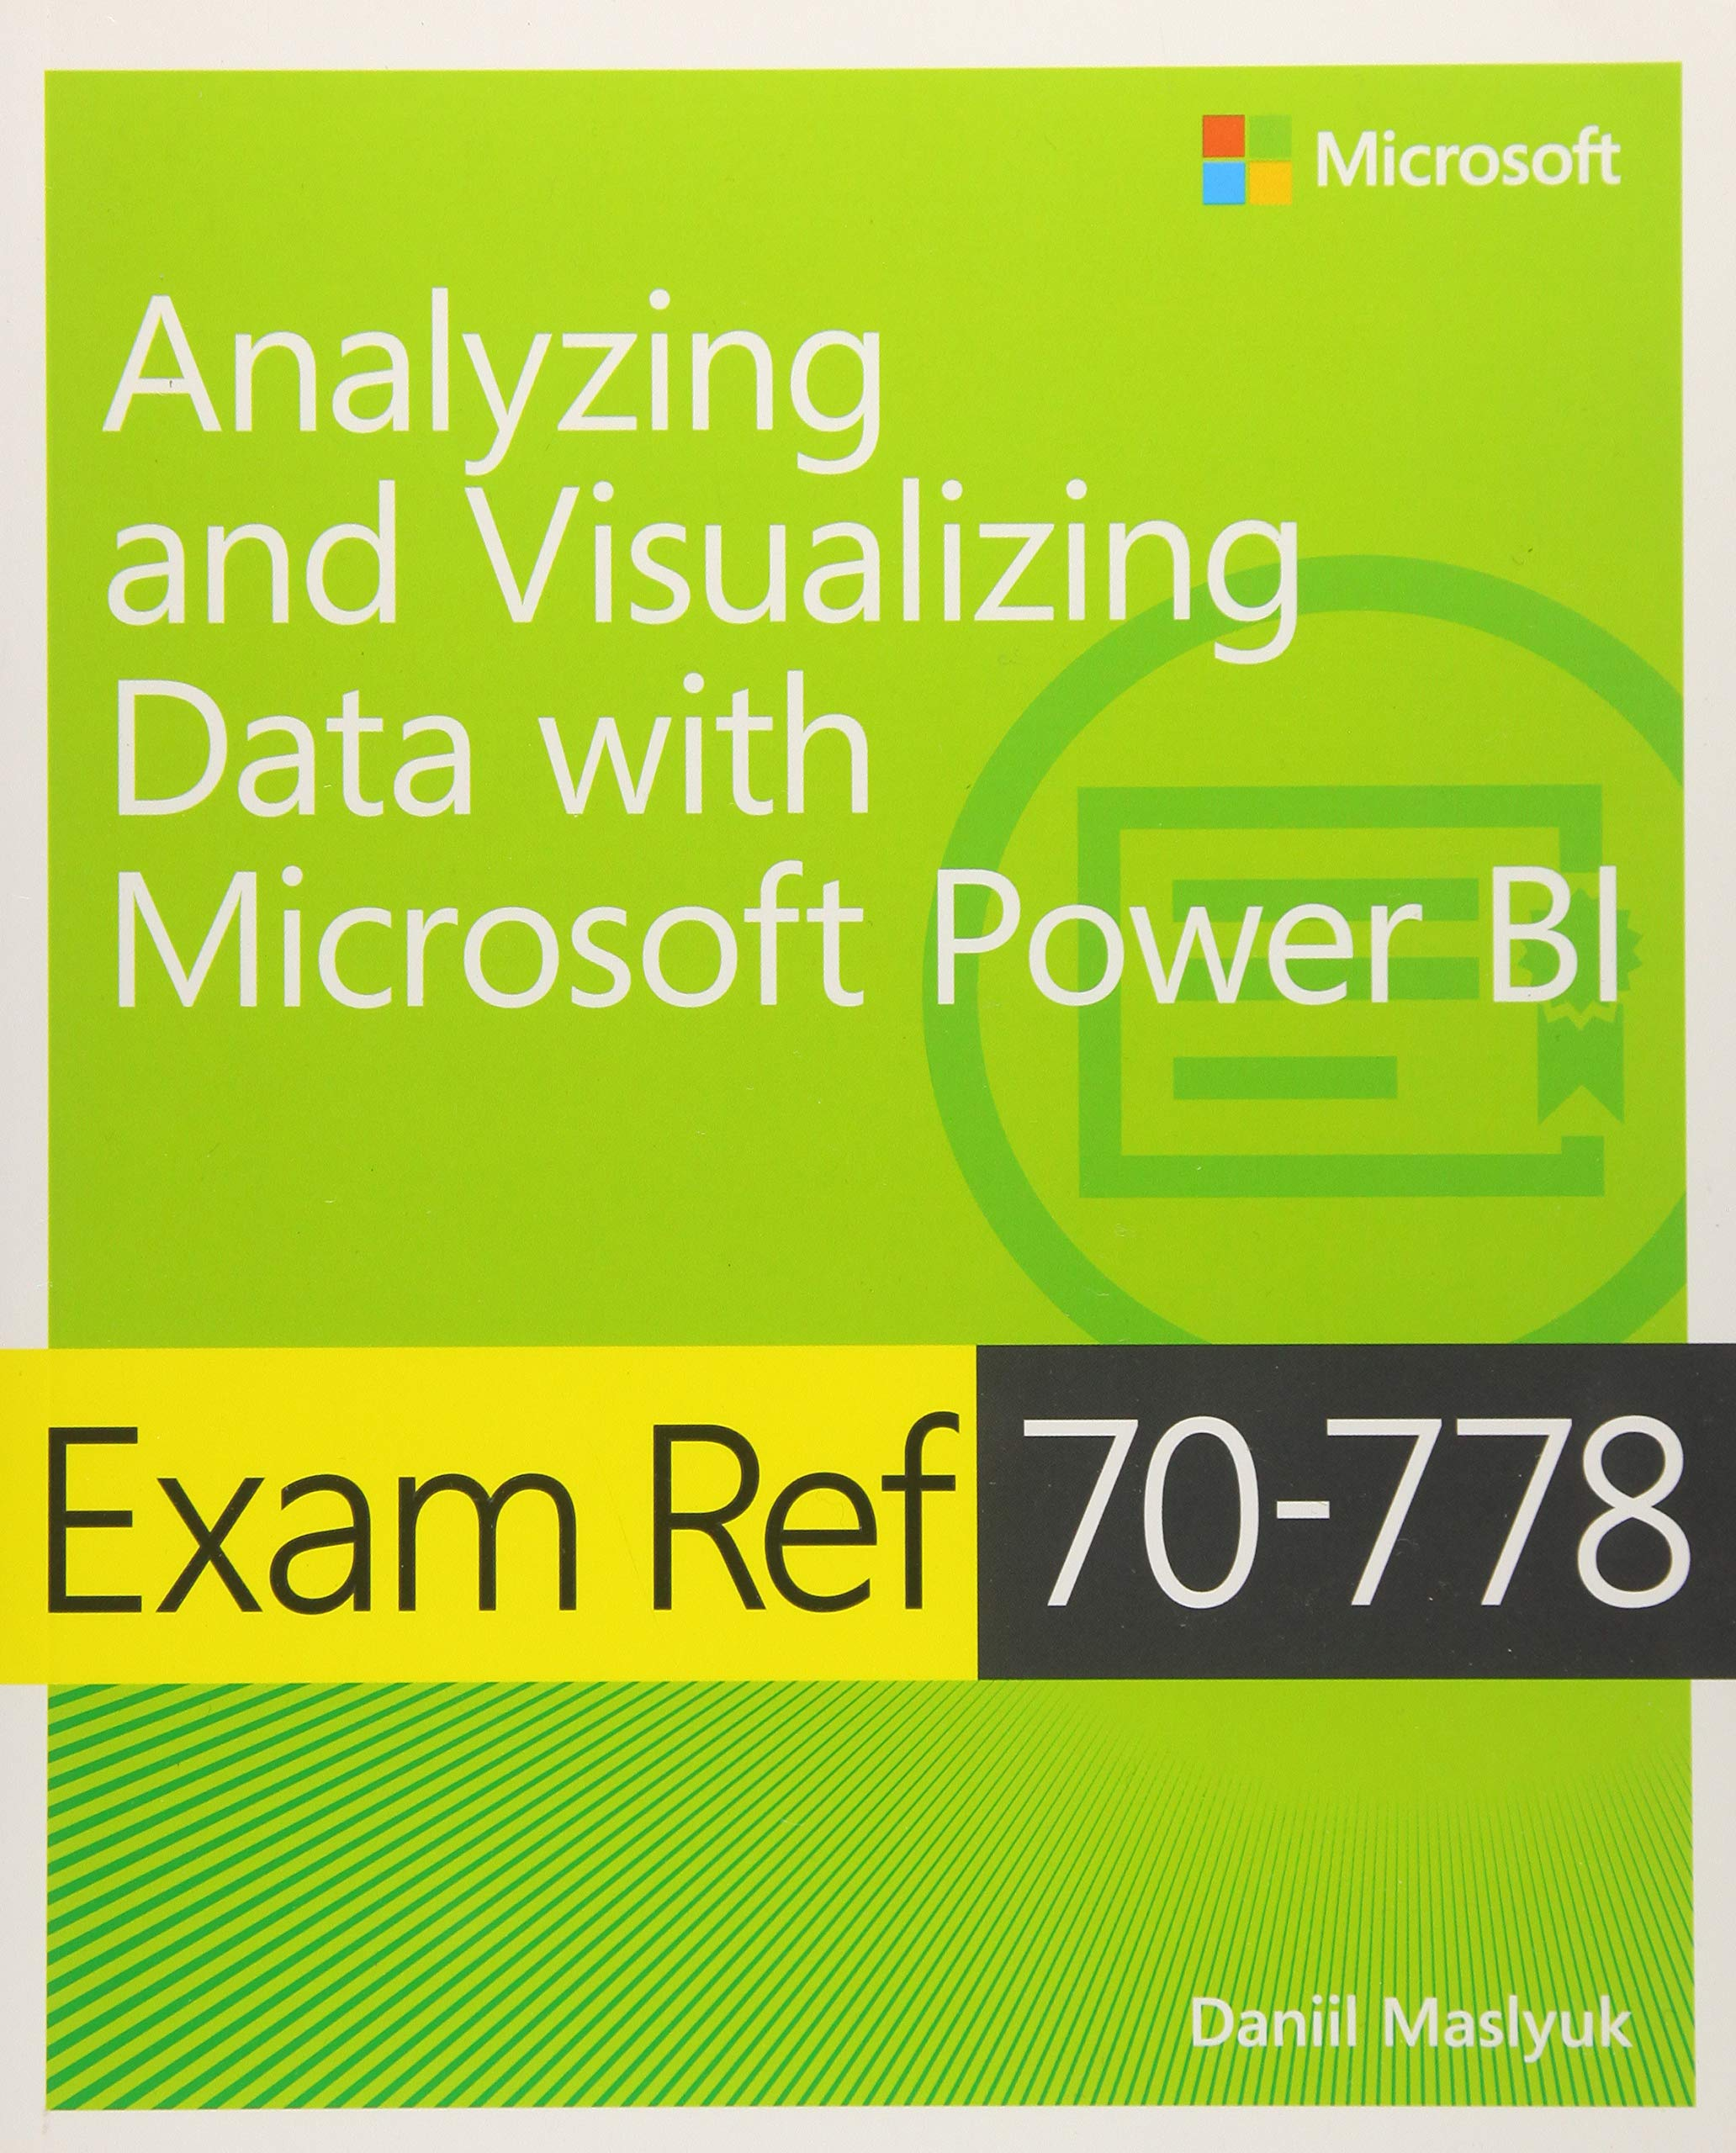 Power BI DAX & Data Modelling Training - Sydney - August 2019